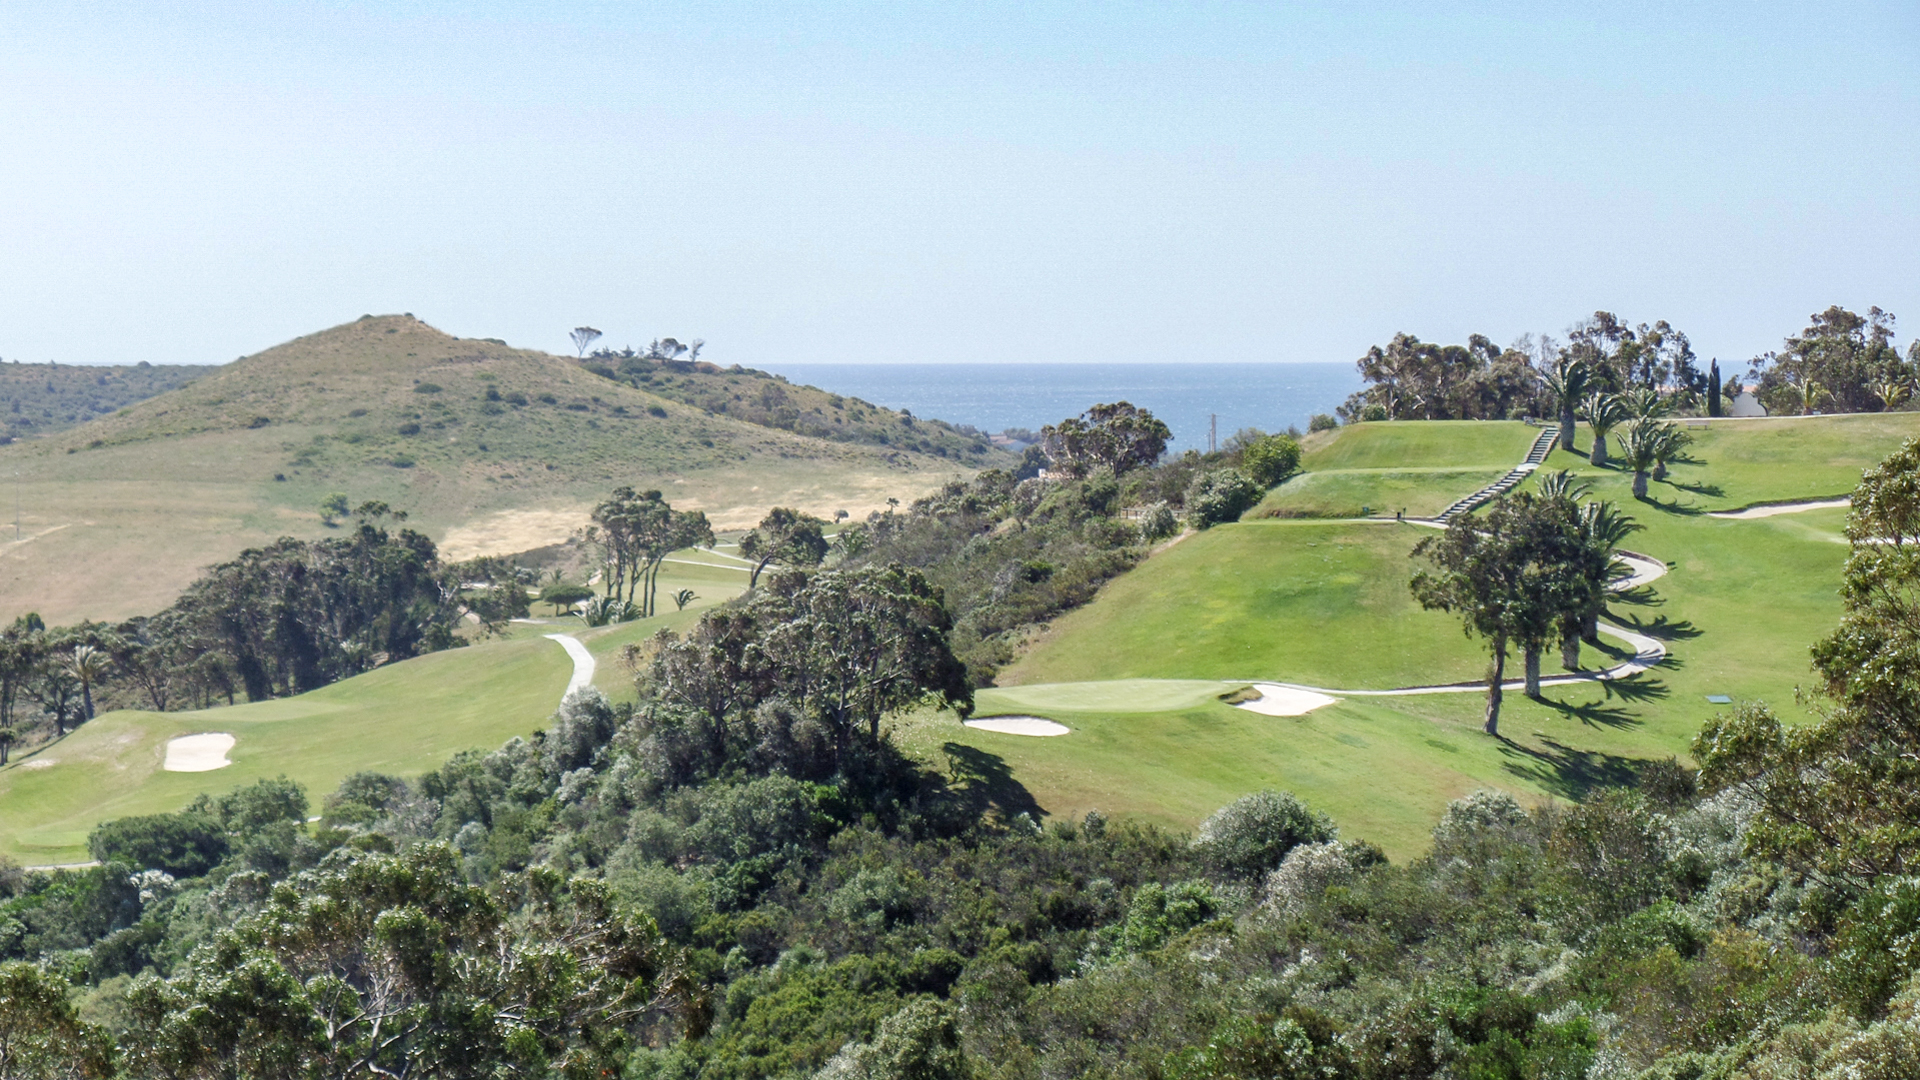 3 Bedroom Townhouse with spectacular golf, countryside and sea views, Budens, West Algarve | LG859